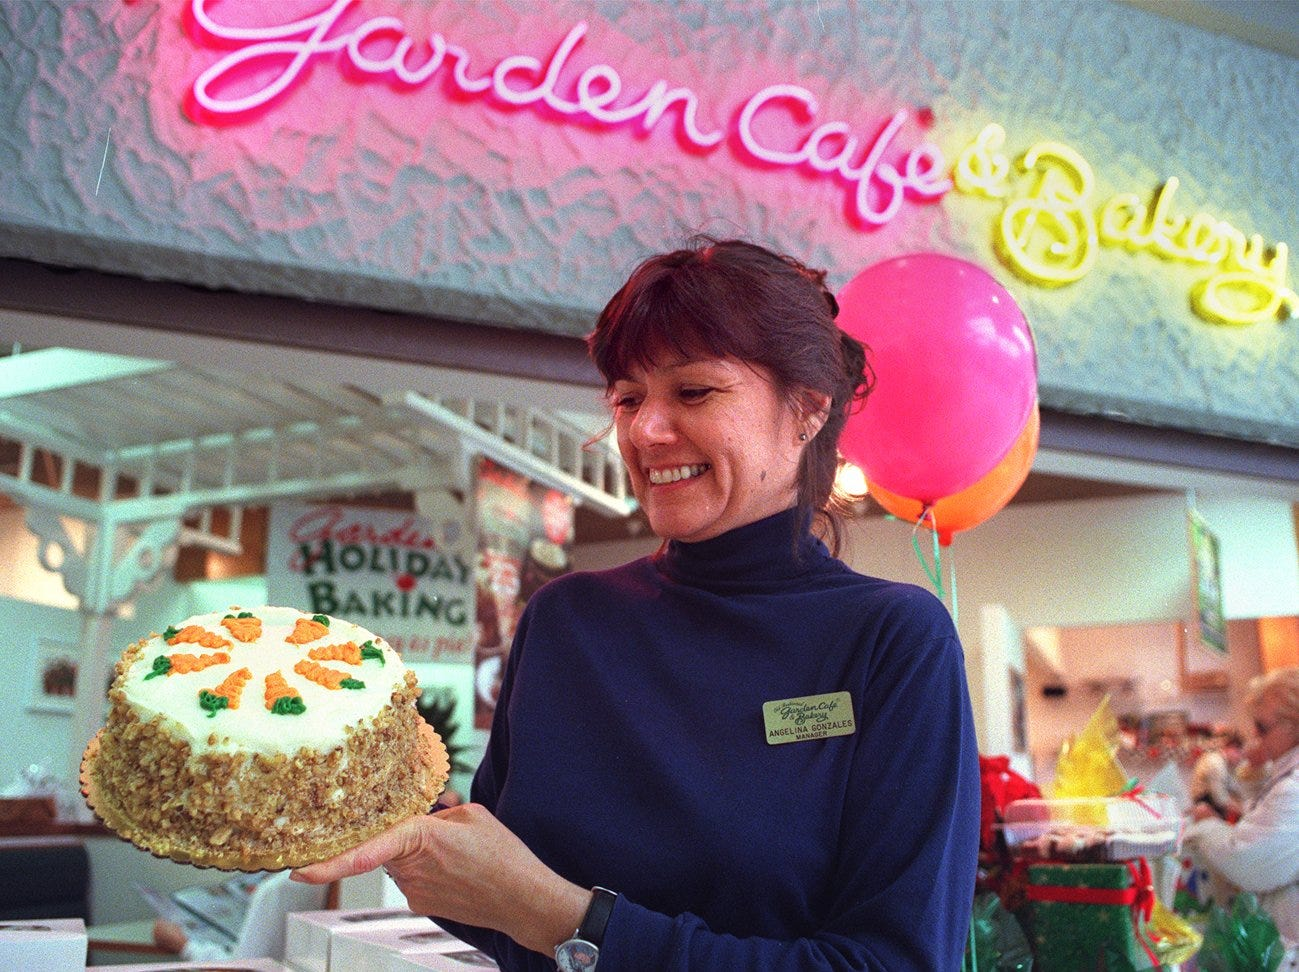 Angelina Gonzales, manager of the Garden Cafe & Bakery at Valley West Mall, with one of her delicious carrot cake desserts on Nov. 26, 1997.